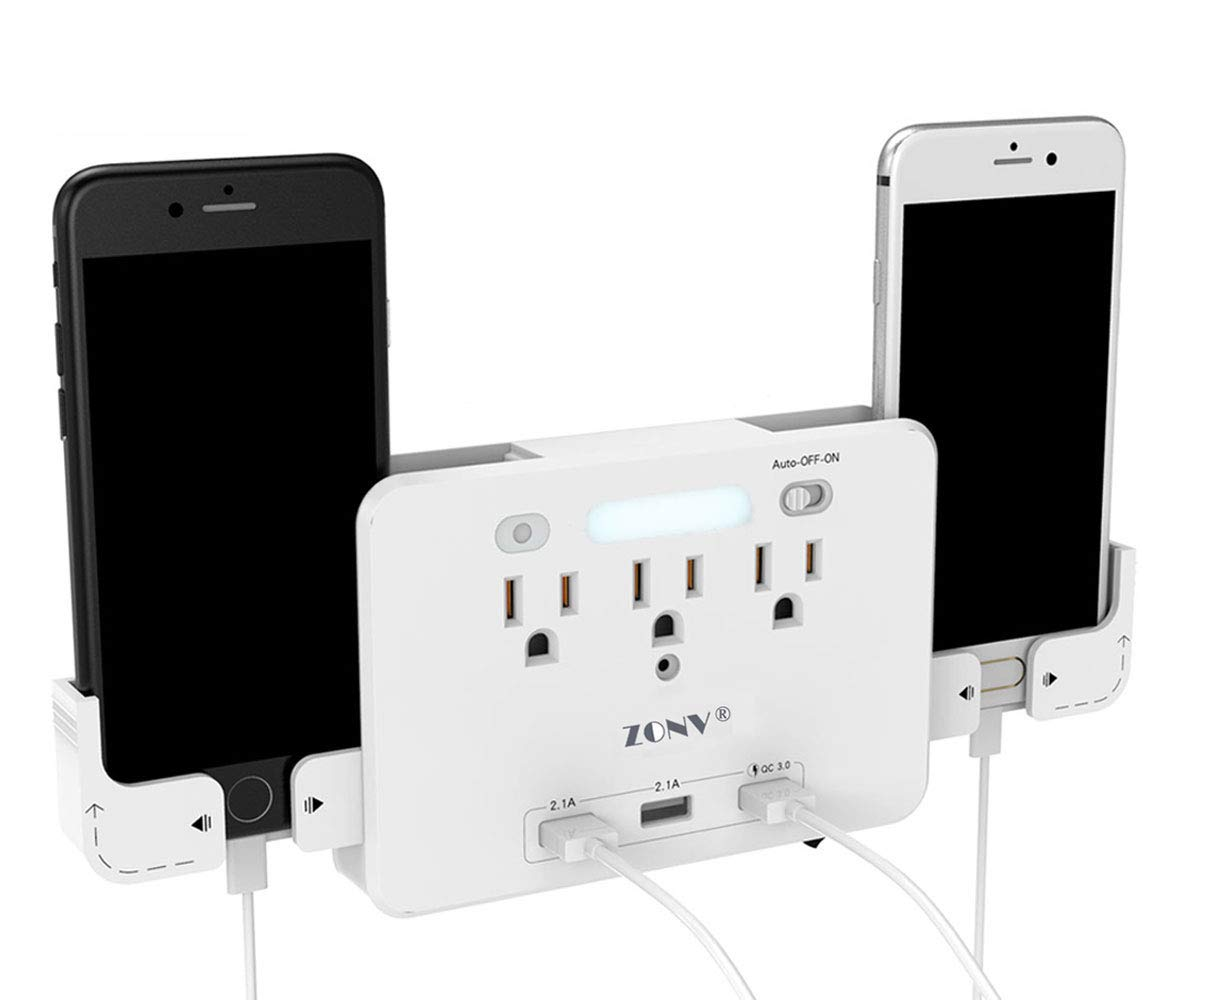 QC 3.0 USB Charger Portable Wall Mount Outlet Plug with DuaL Charging Ports and Quick Charger 3.0, Multiple Adapter LED Sensor Night Light 2 Slide Out Phone Holders Socket Shelf Surge Protector